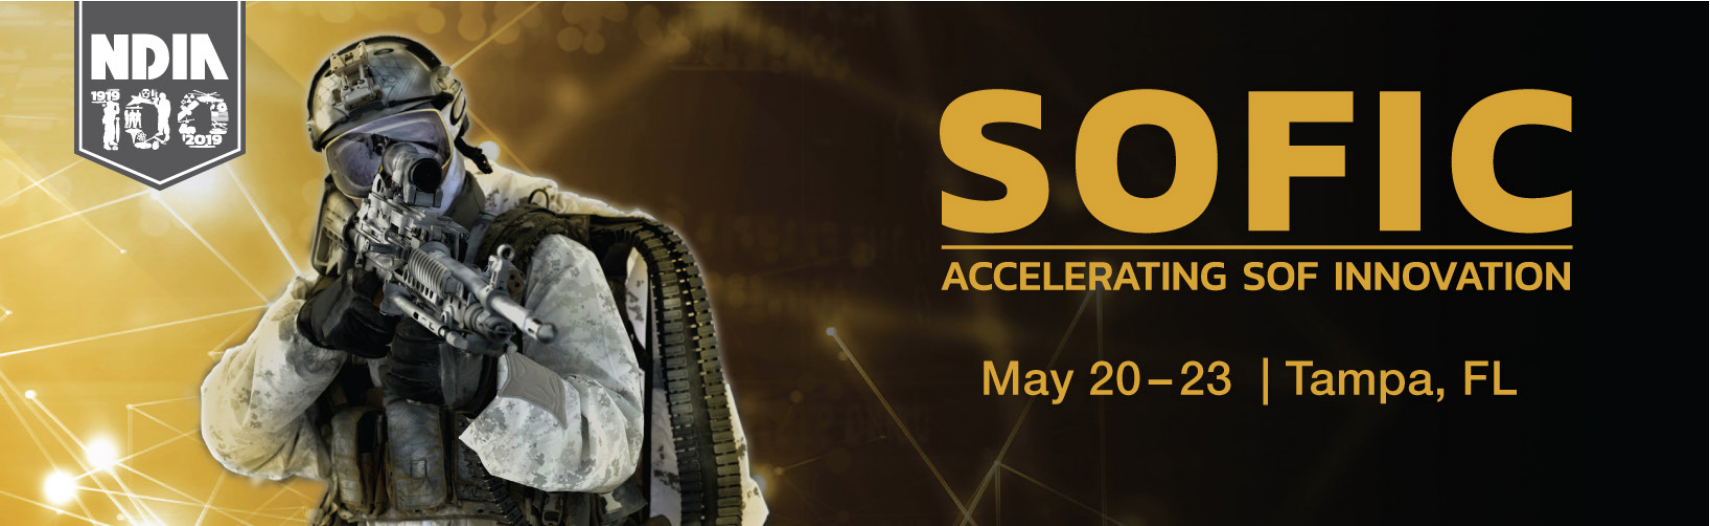 SOFIC 2019 Banner.png